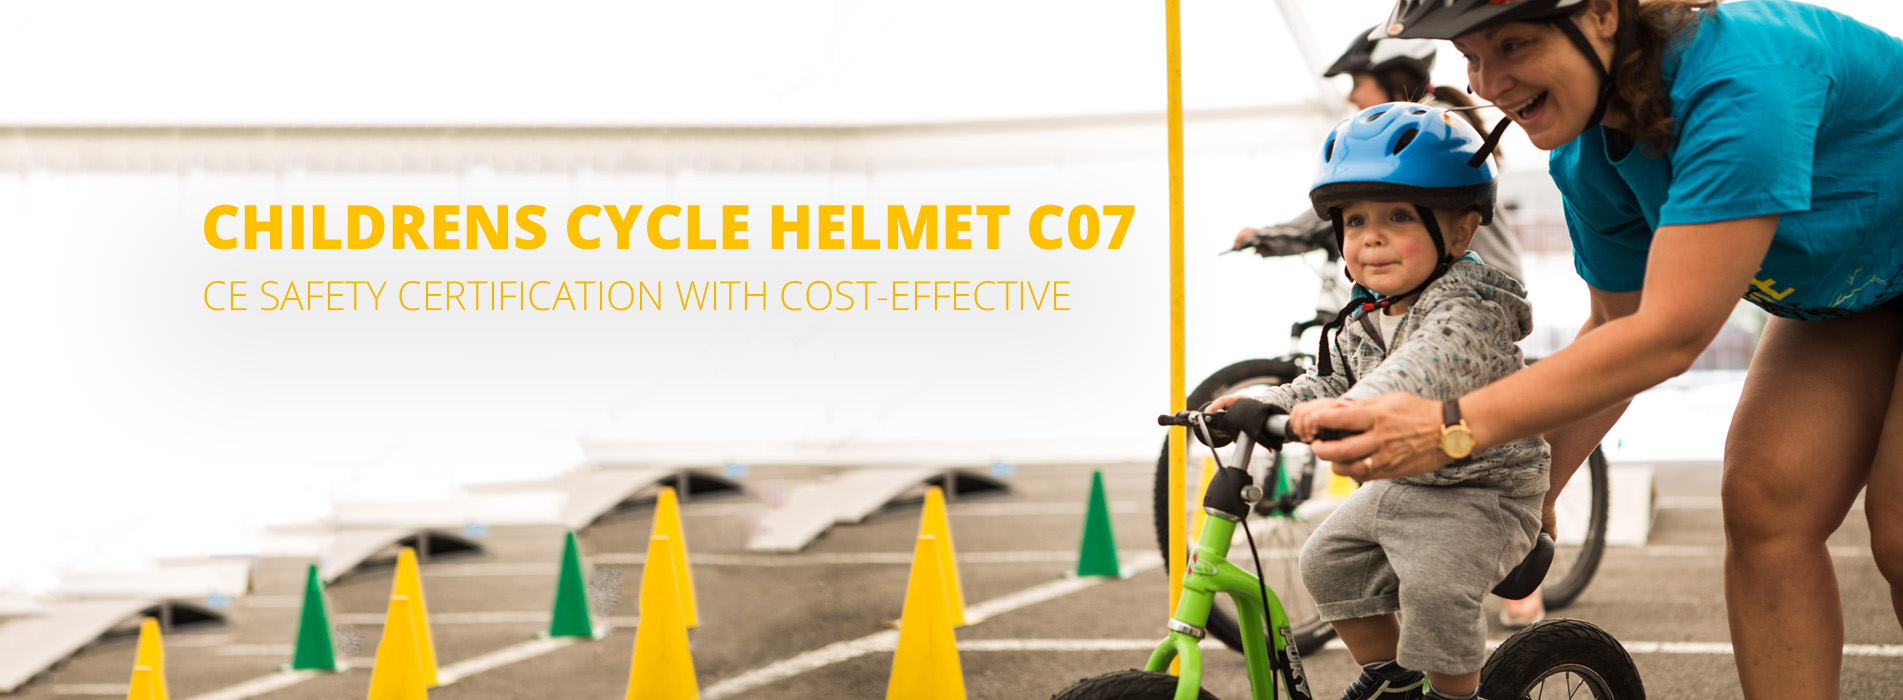 childrens cycle helmet c07 banner